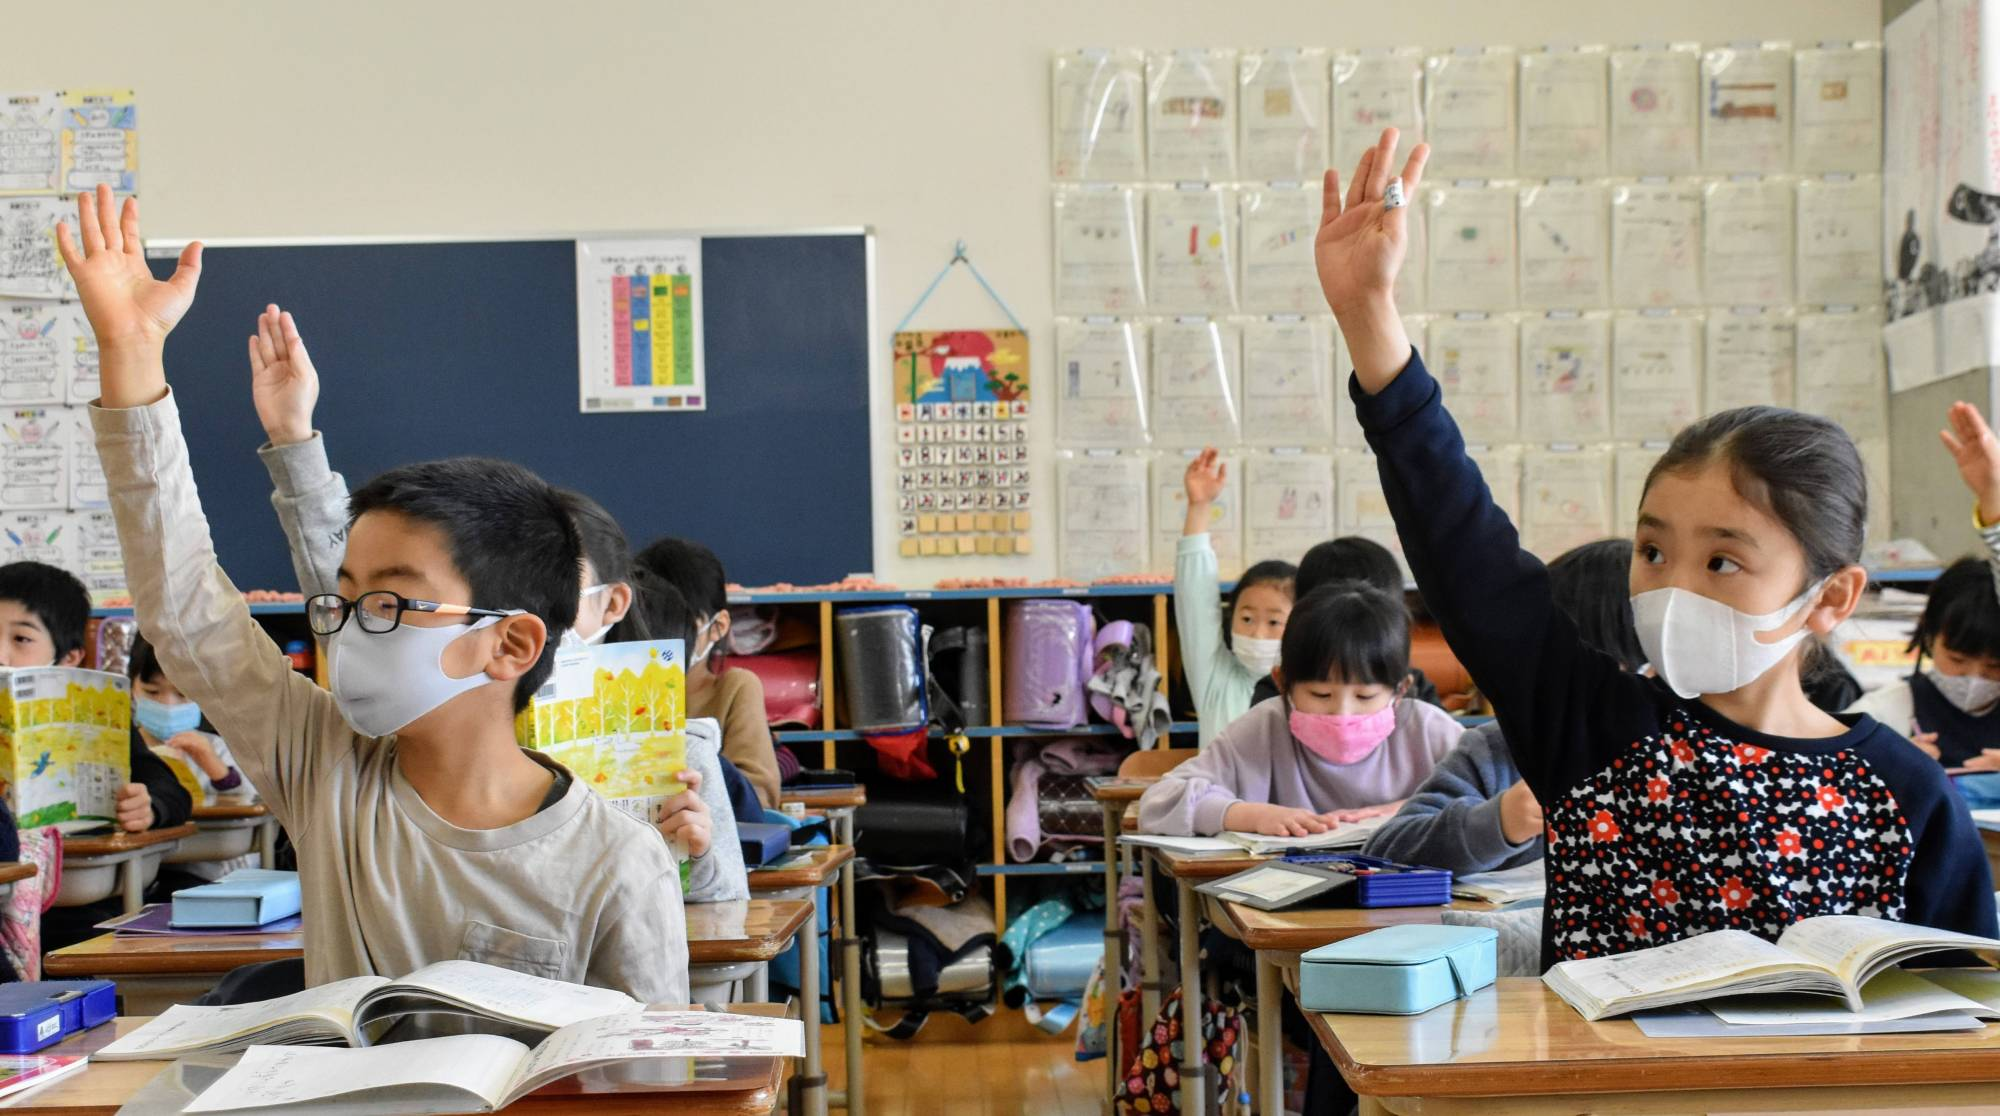 Students attend class at Funabori Elementary School in Edogawa Ward, Tokyo, in March. All students are required to wear a mask during school hours. | TOMOHIRO OSAKI